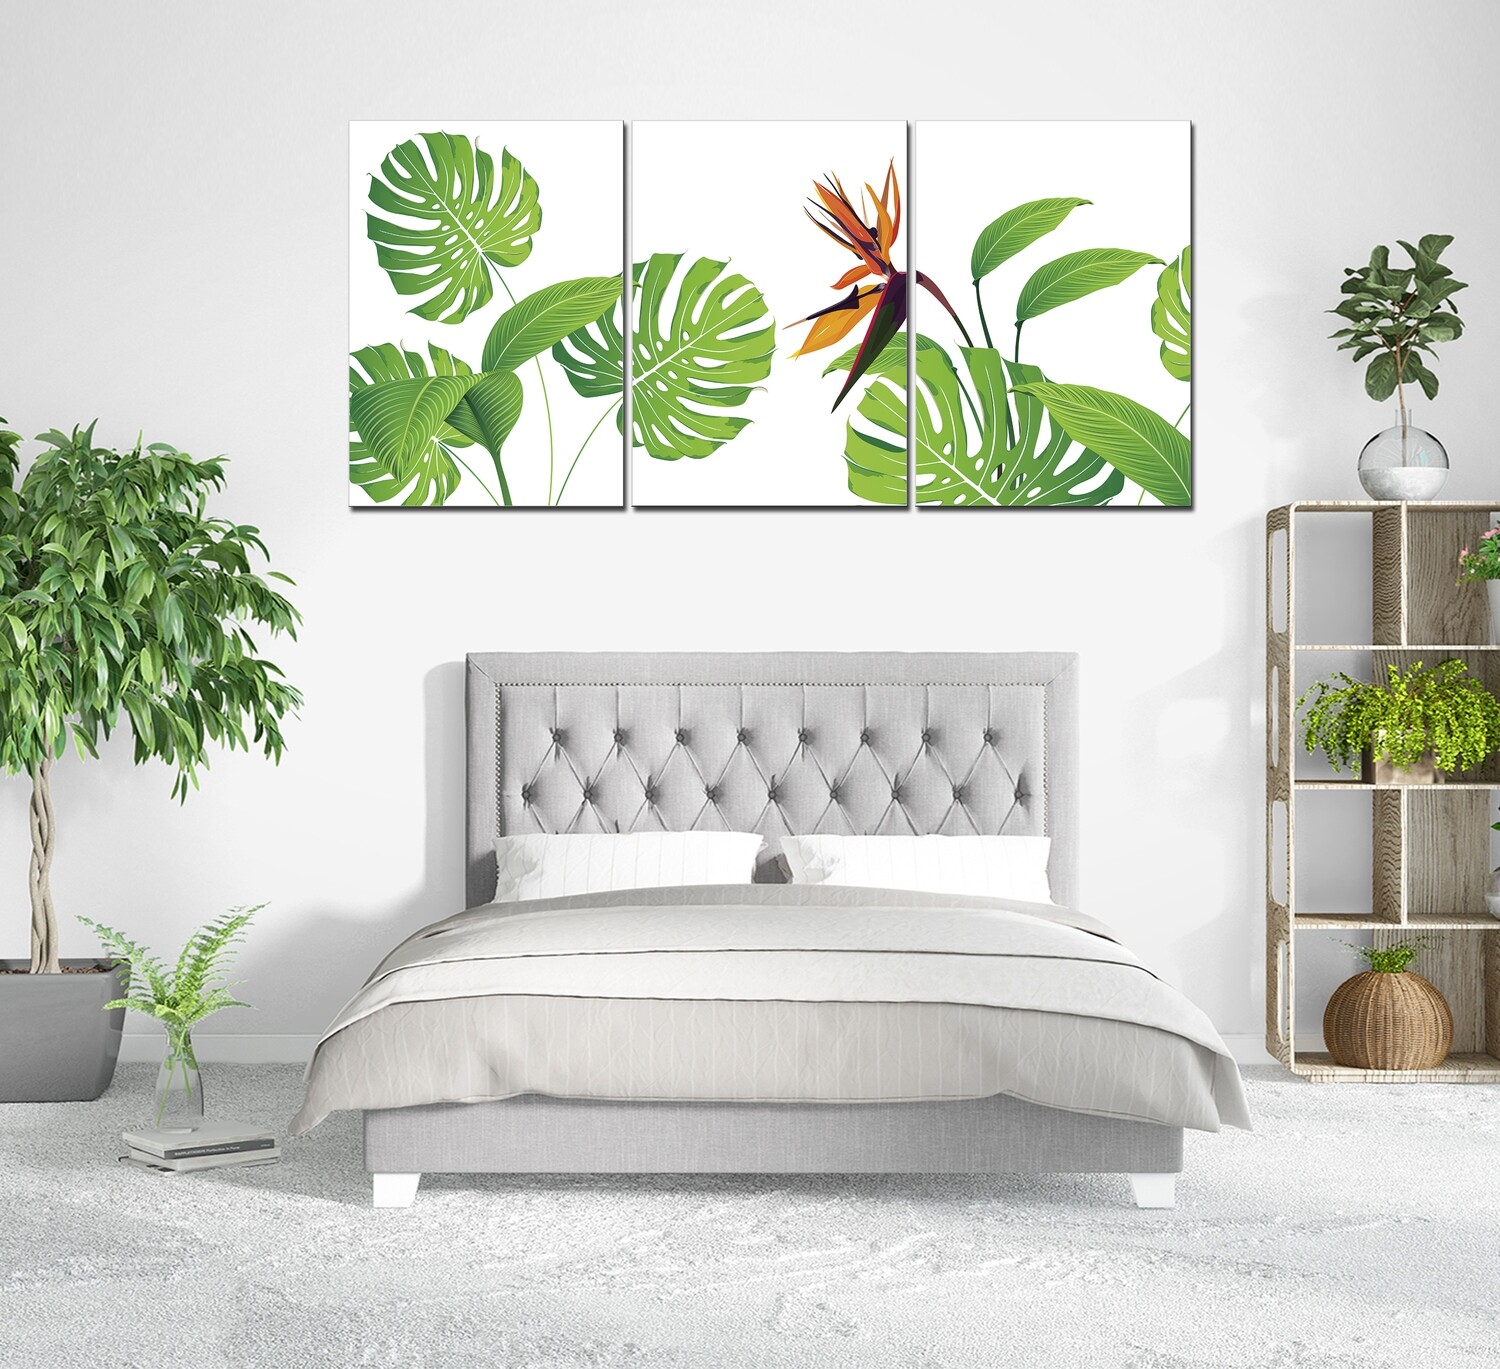 Green Leaves - Modern Luxury Acrylic Glass Wall art - Frameless and Ready to Hang